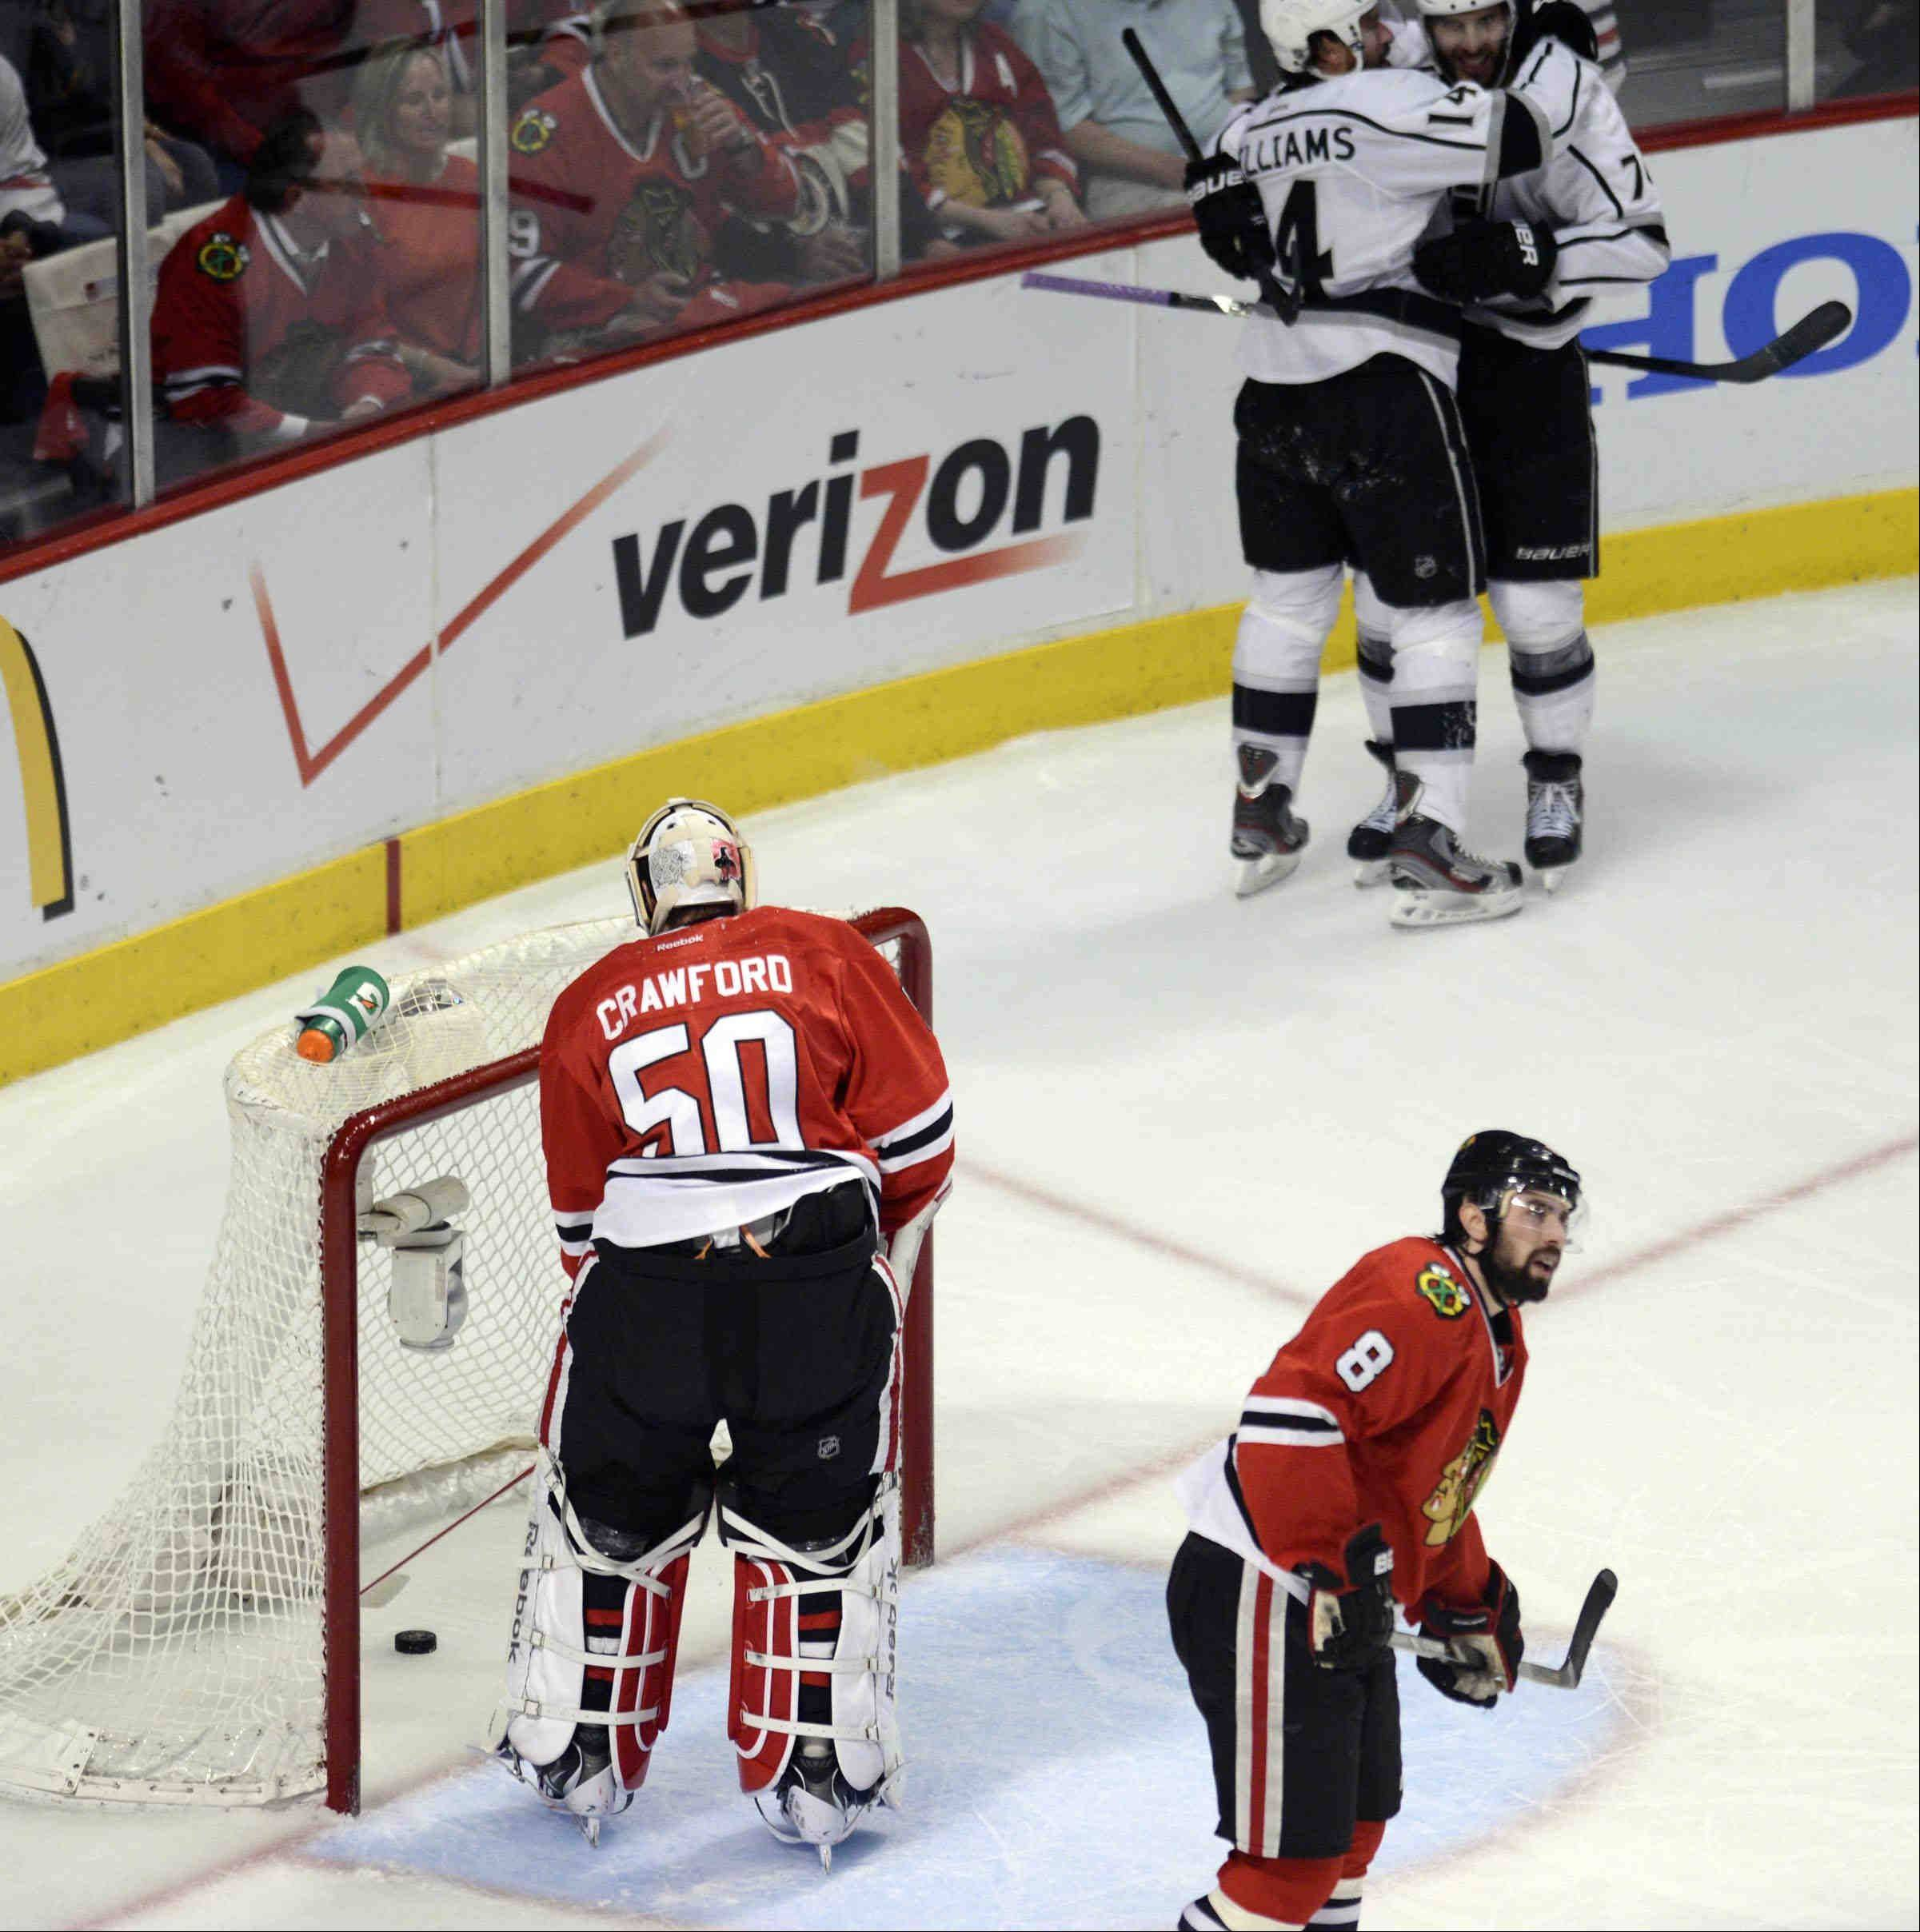 Chicago Blackhawks goalie Corey Crawford scoops the puck from his own net as Los Angeles Kings center Dwight King and Justin Williams celebrate King's short-handed goal in the second period Saturday during the NHL Western Conference Finals Game 5 at the United Center in Chicago.